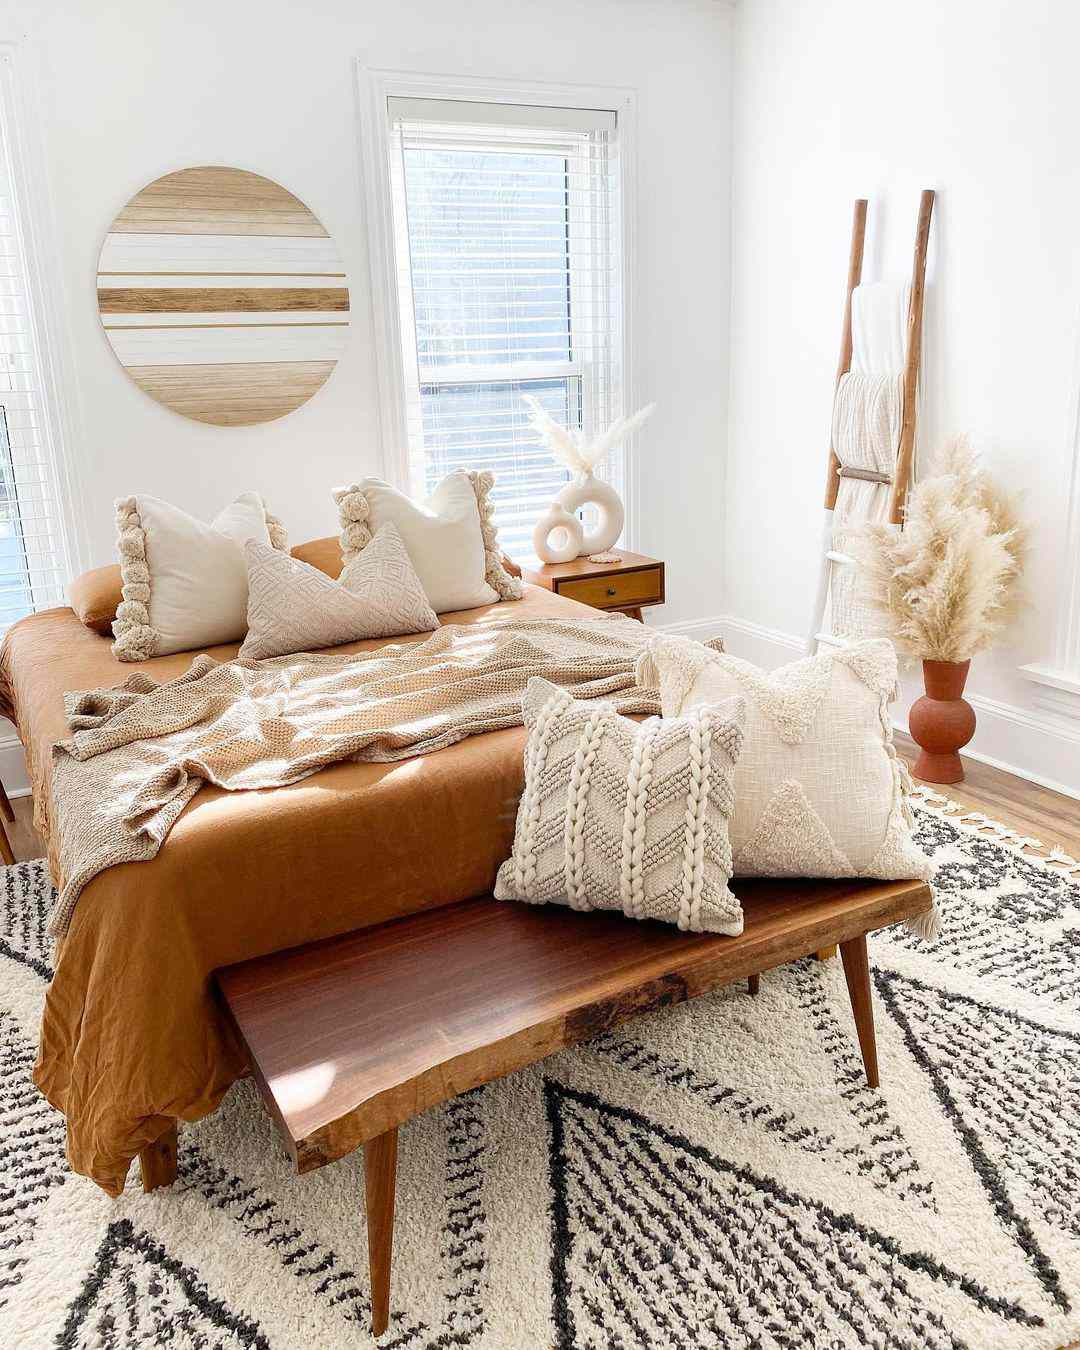 Boho inspired bedroom with textured neutral pillows and blankets.